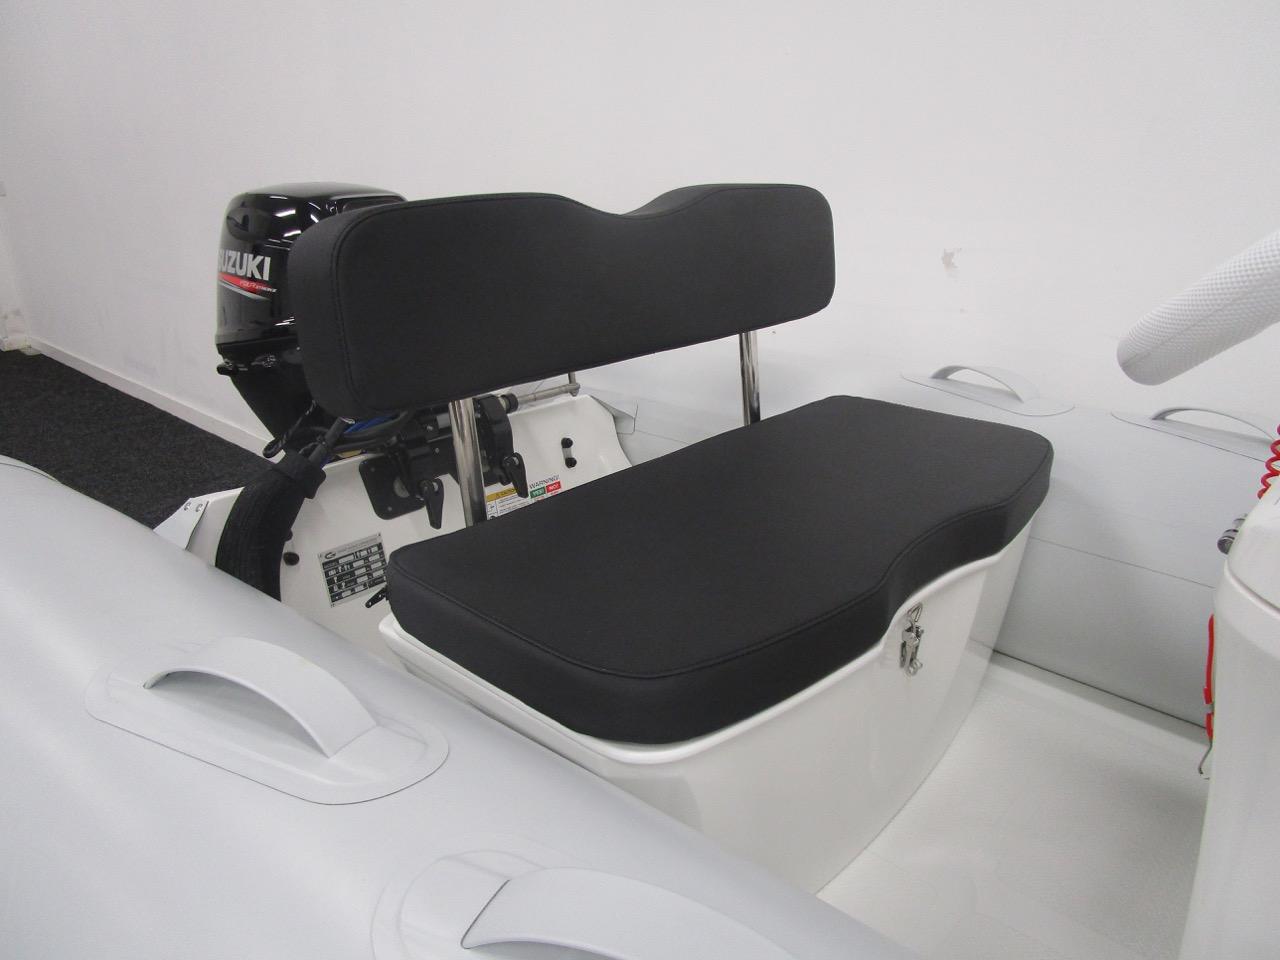 GRAND S300 RIB helm seat for two adults